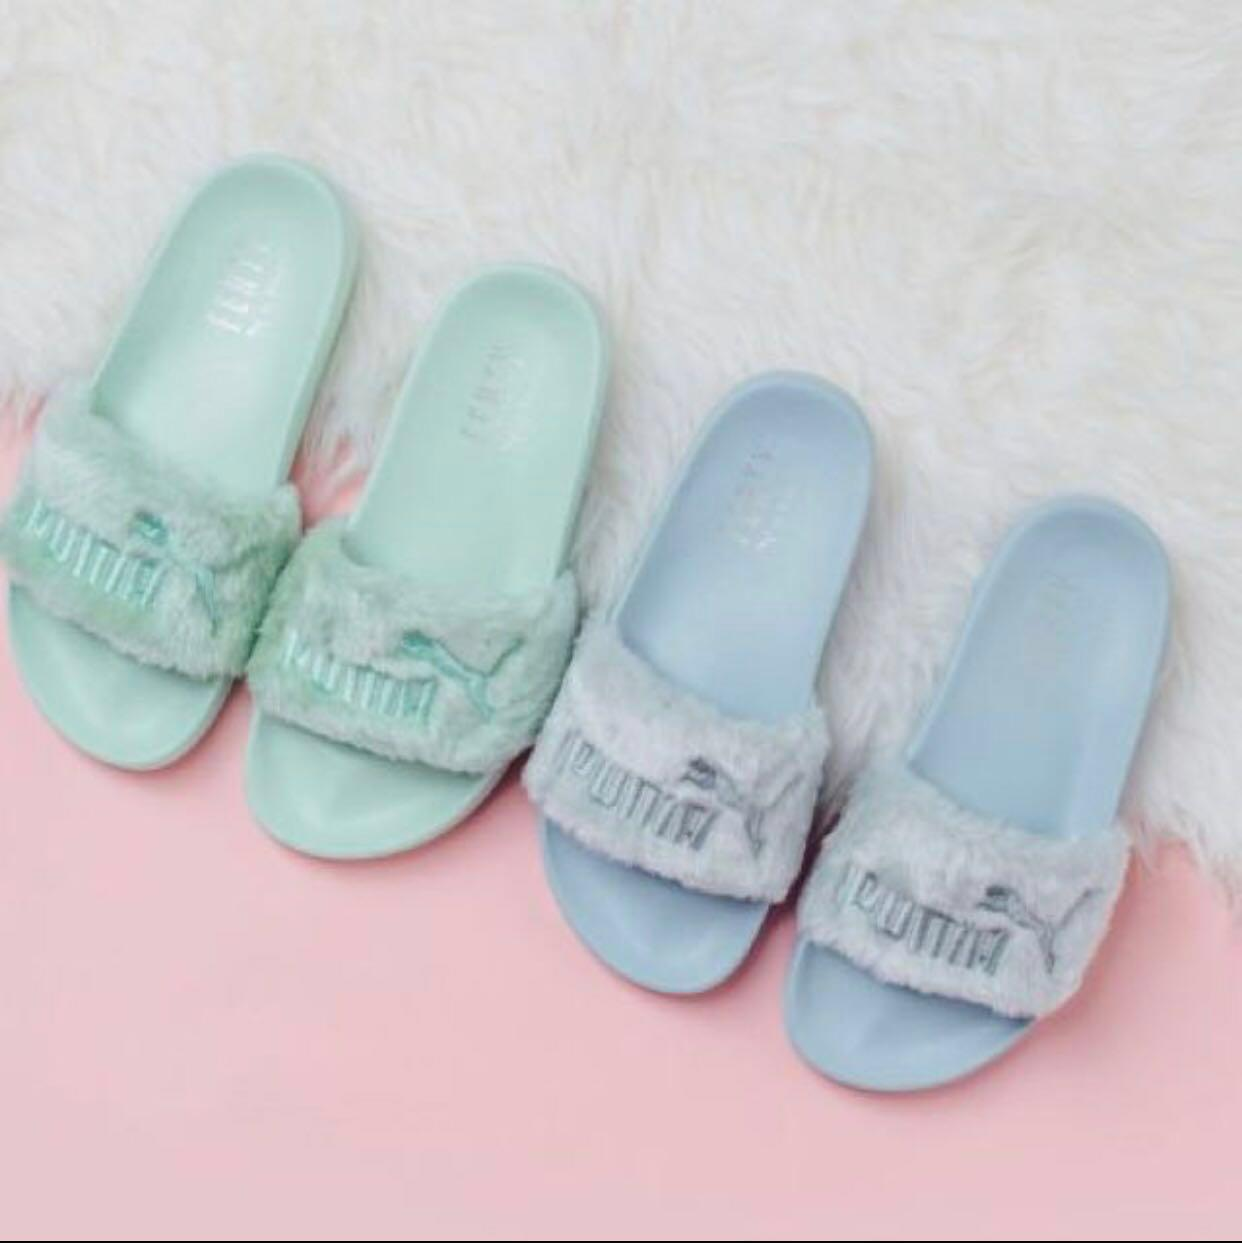 best website 981ae ba2f9 Rihanna x Puma Fenty Bay Fur Slides, Women's Fashion, Shoes ...